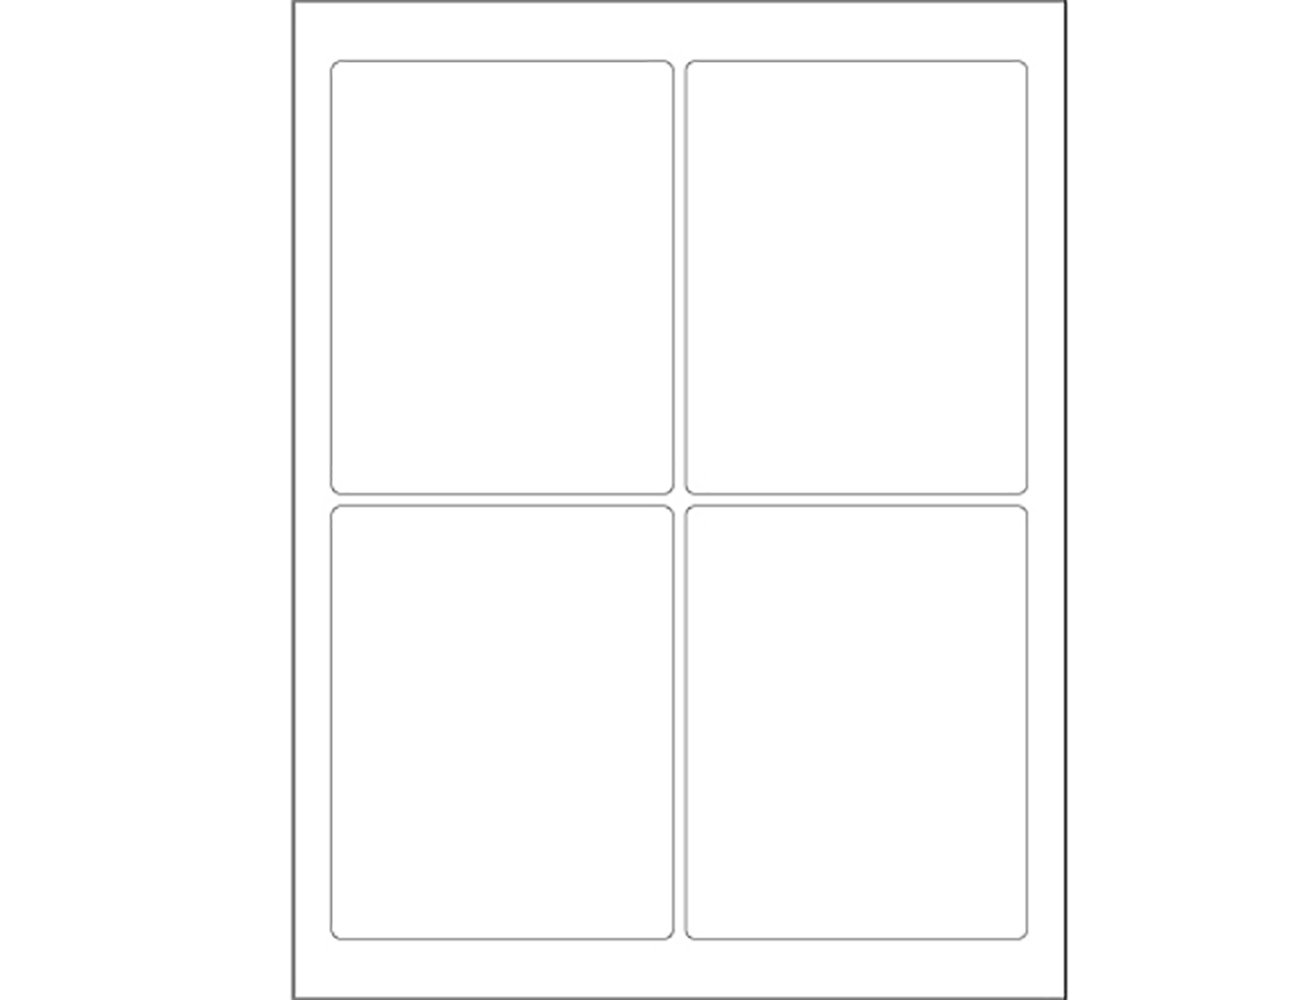 2.25 Height 13 Length RetailSource LL167x1 3 3//4 x 4 3//4 White Rectangle Laser Labels Pack of 400